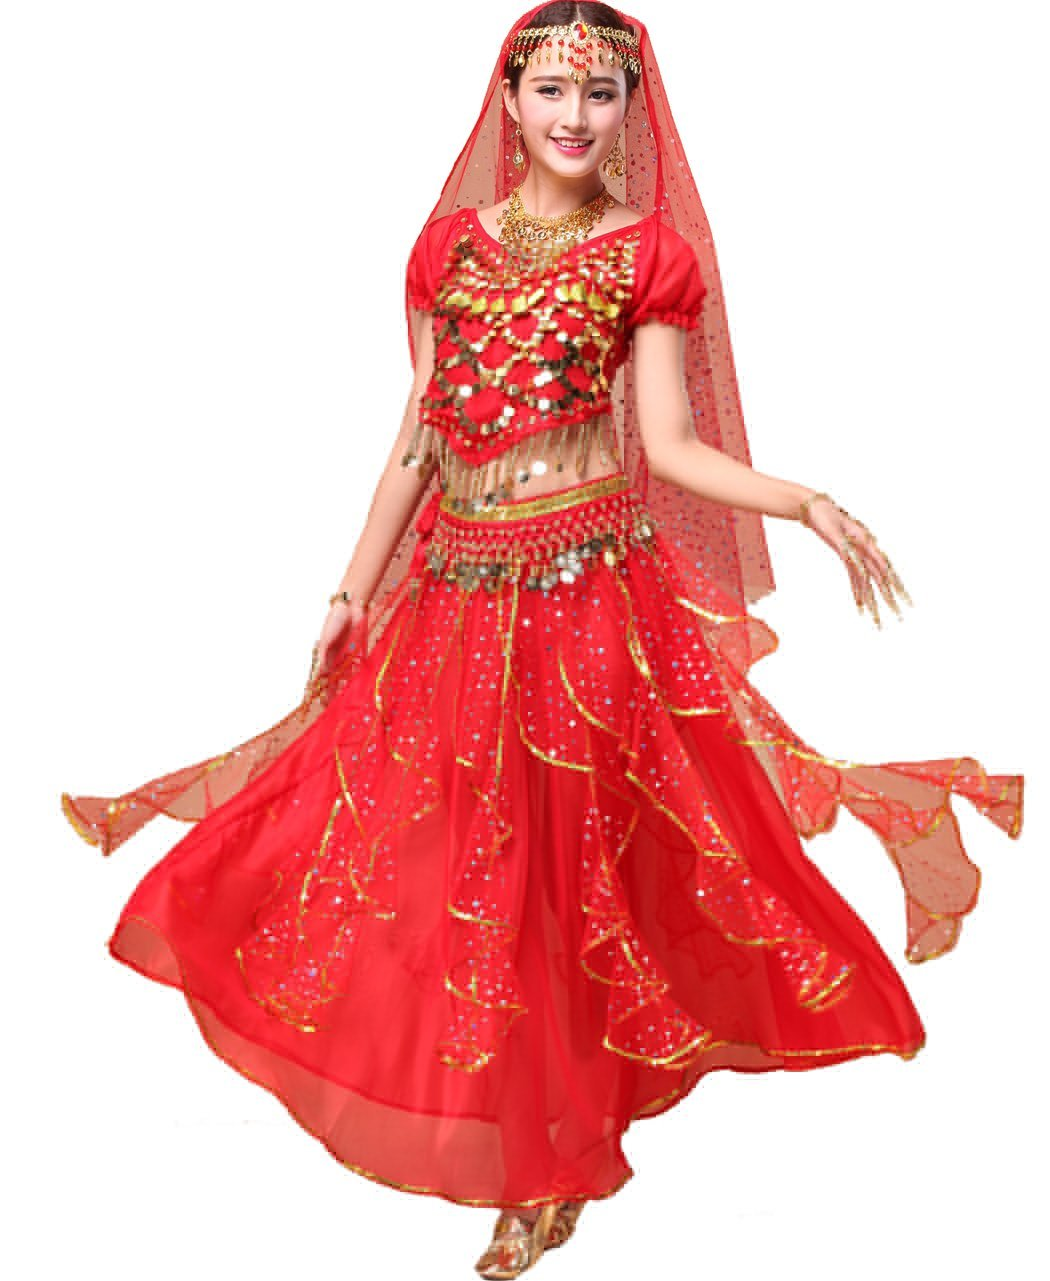 fe156714d5ef Astage Women Belly Dance Costumes India Danceweae Performance Gifts All  Accessories Sc 1 St Amazon.com